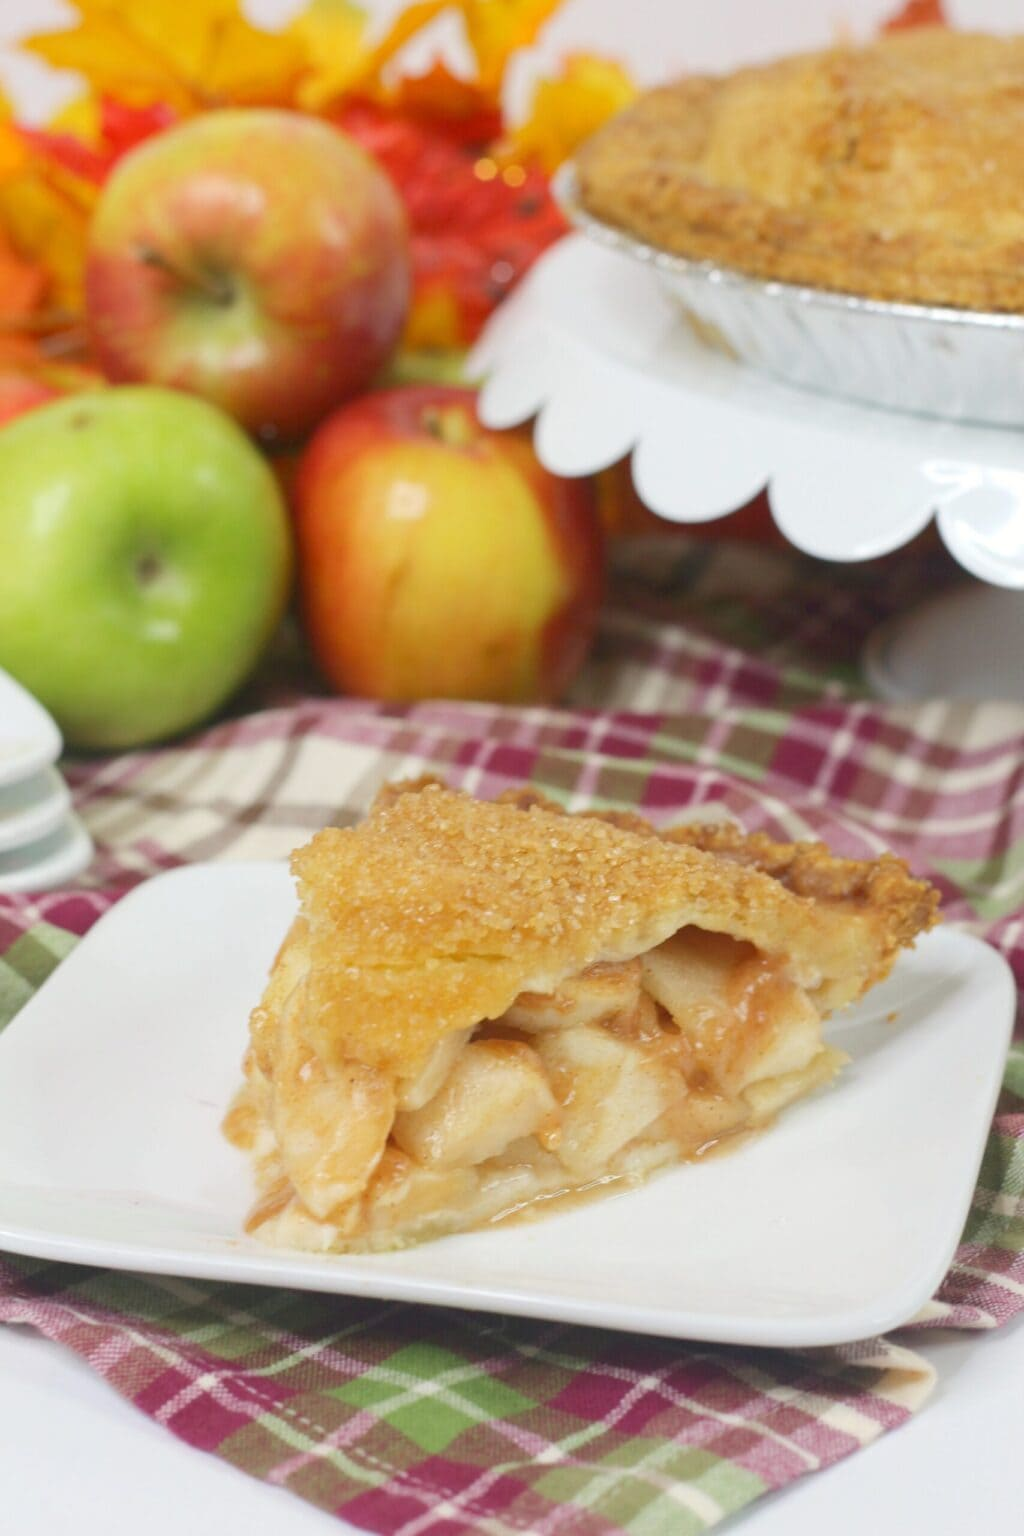 apple pie slice on white plate next to red plaid napkin and red and green apples